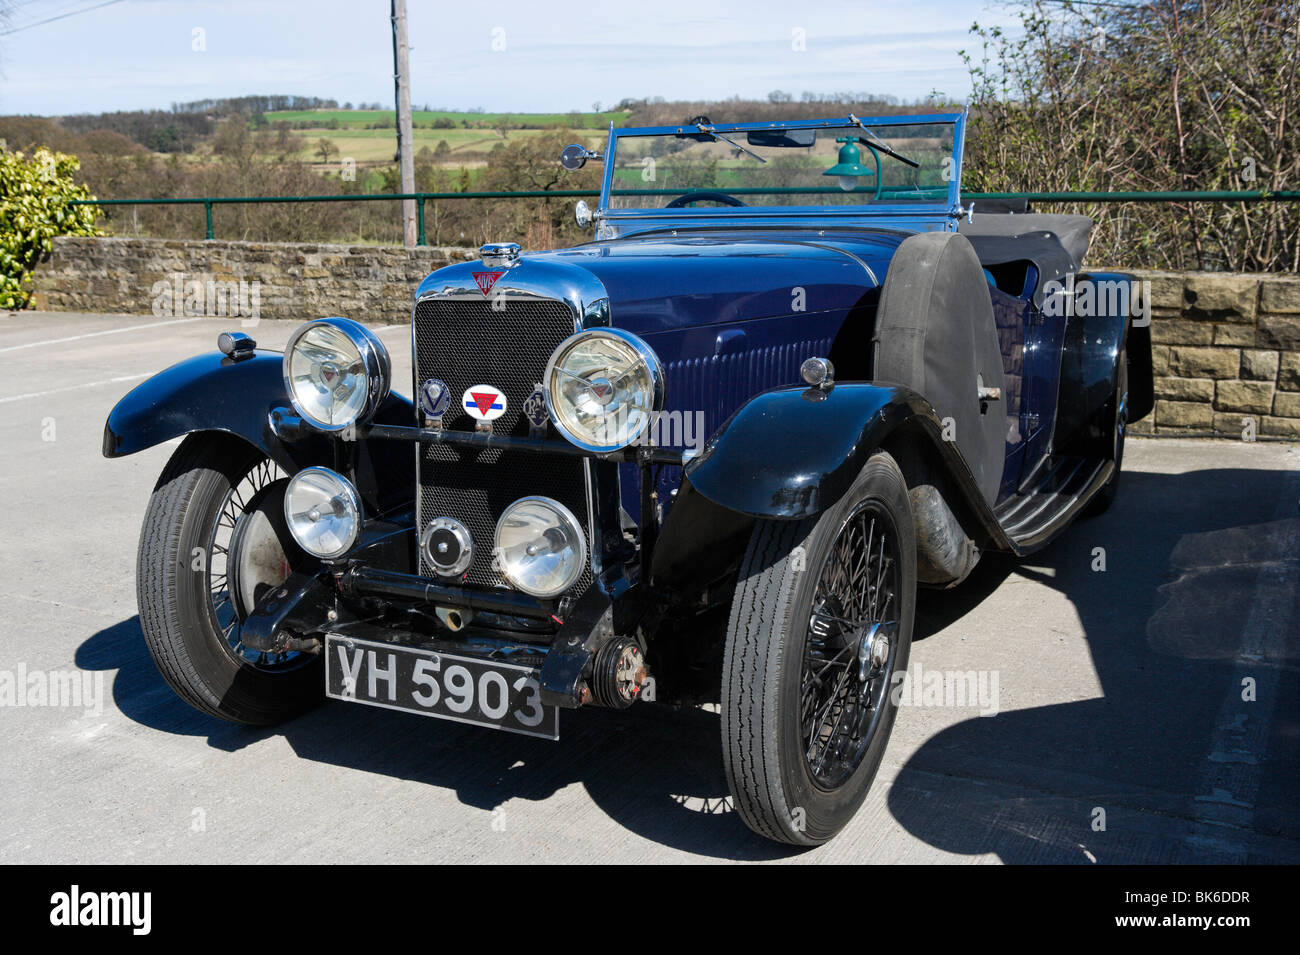 A classic Alvis car in the Yorkshire Dales, England - Stock Image